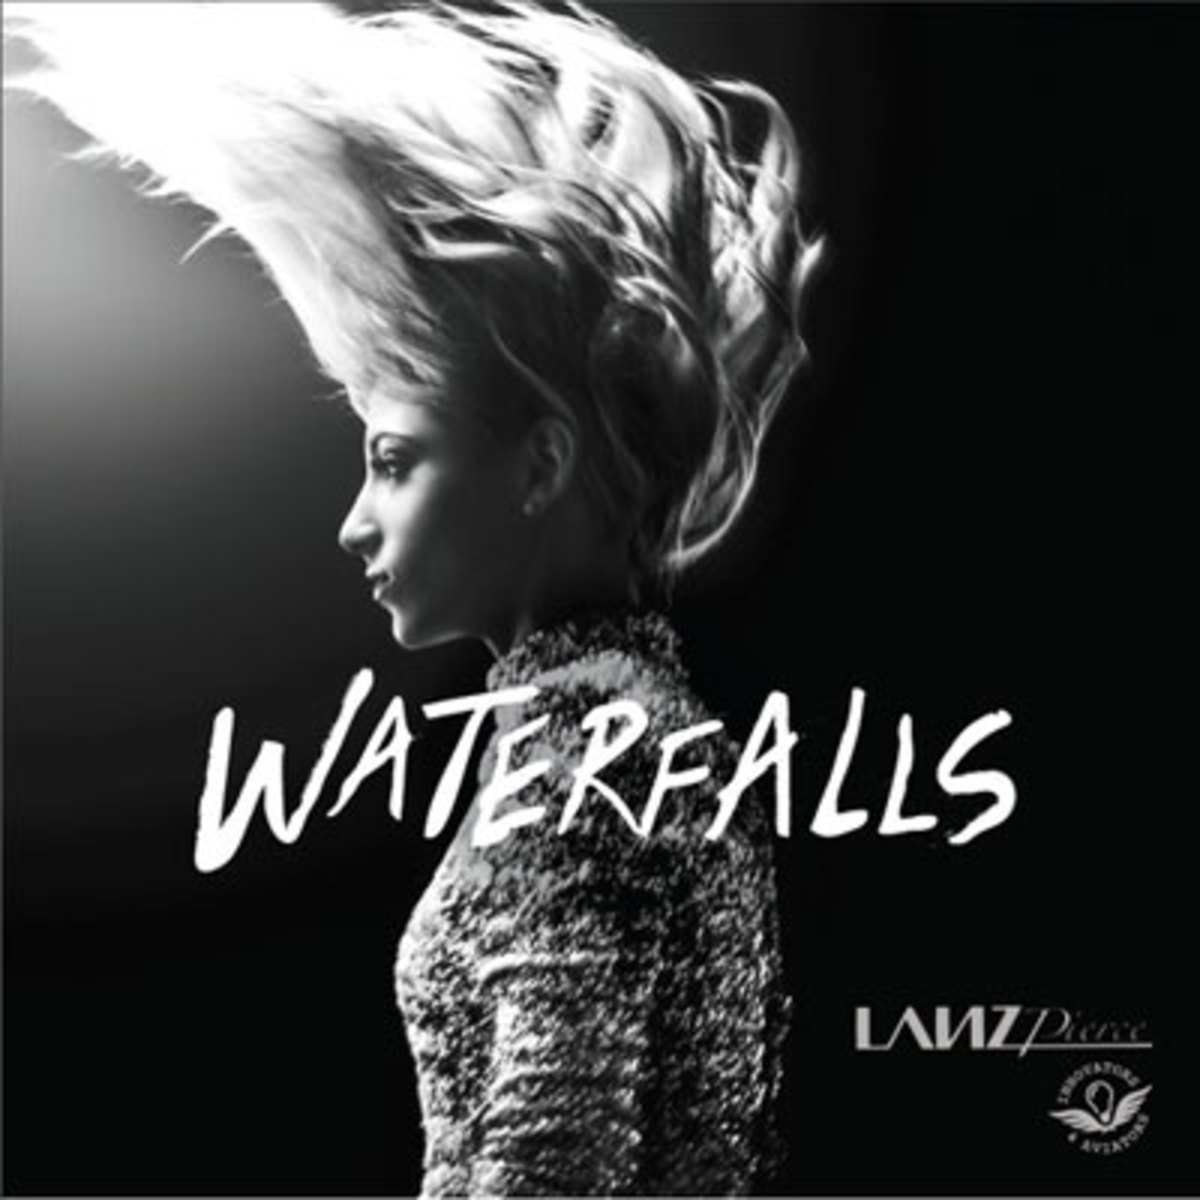 lanzpierce-waterfalls.jpg